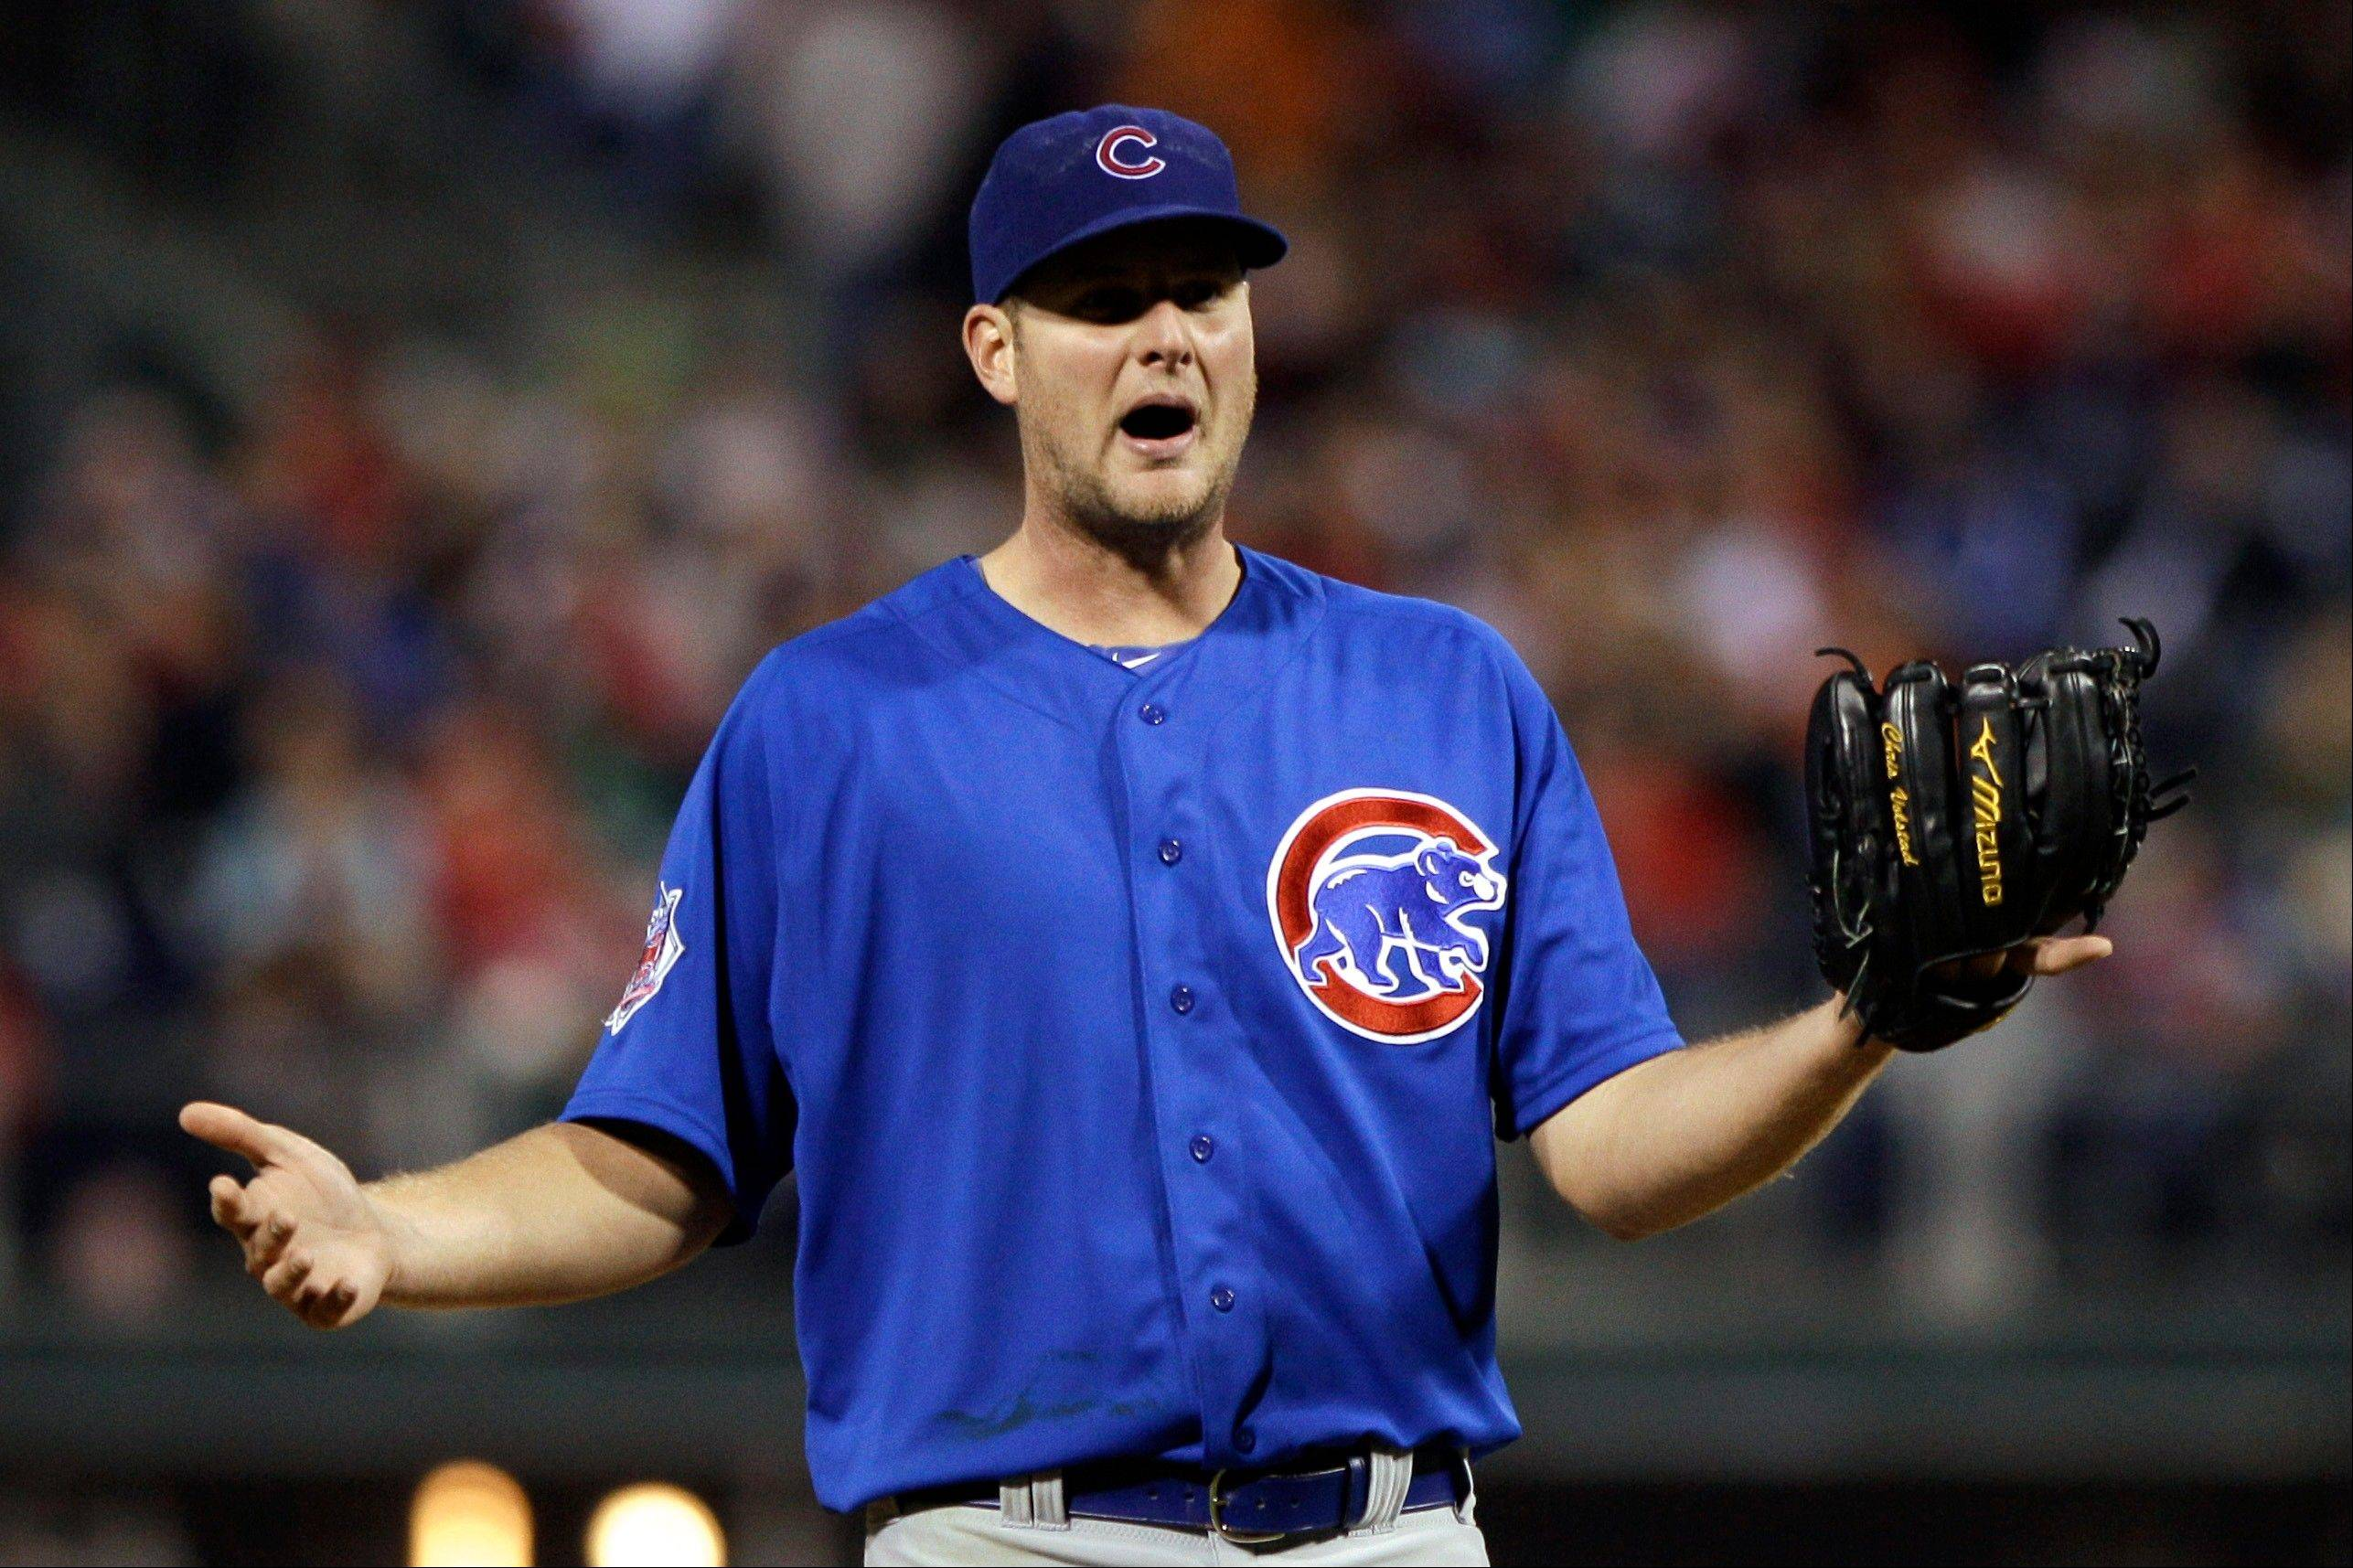 Chicago Cubs starting pitcher Chris Volstad reacts after being called for a balk in the sixth inning Monday inb Philadelphia.